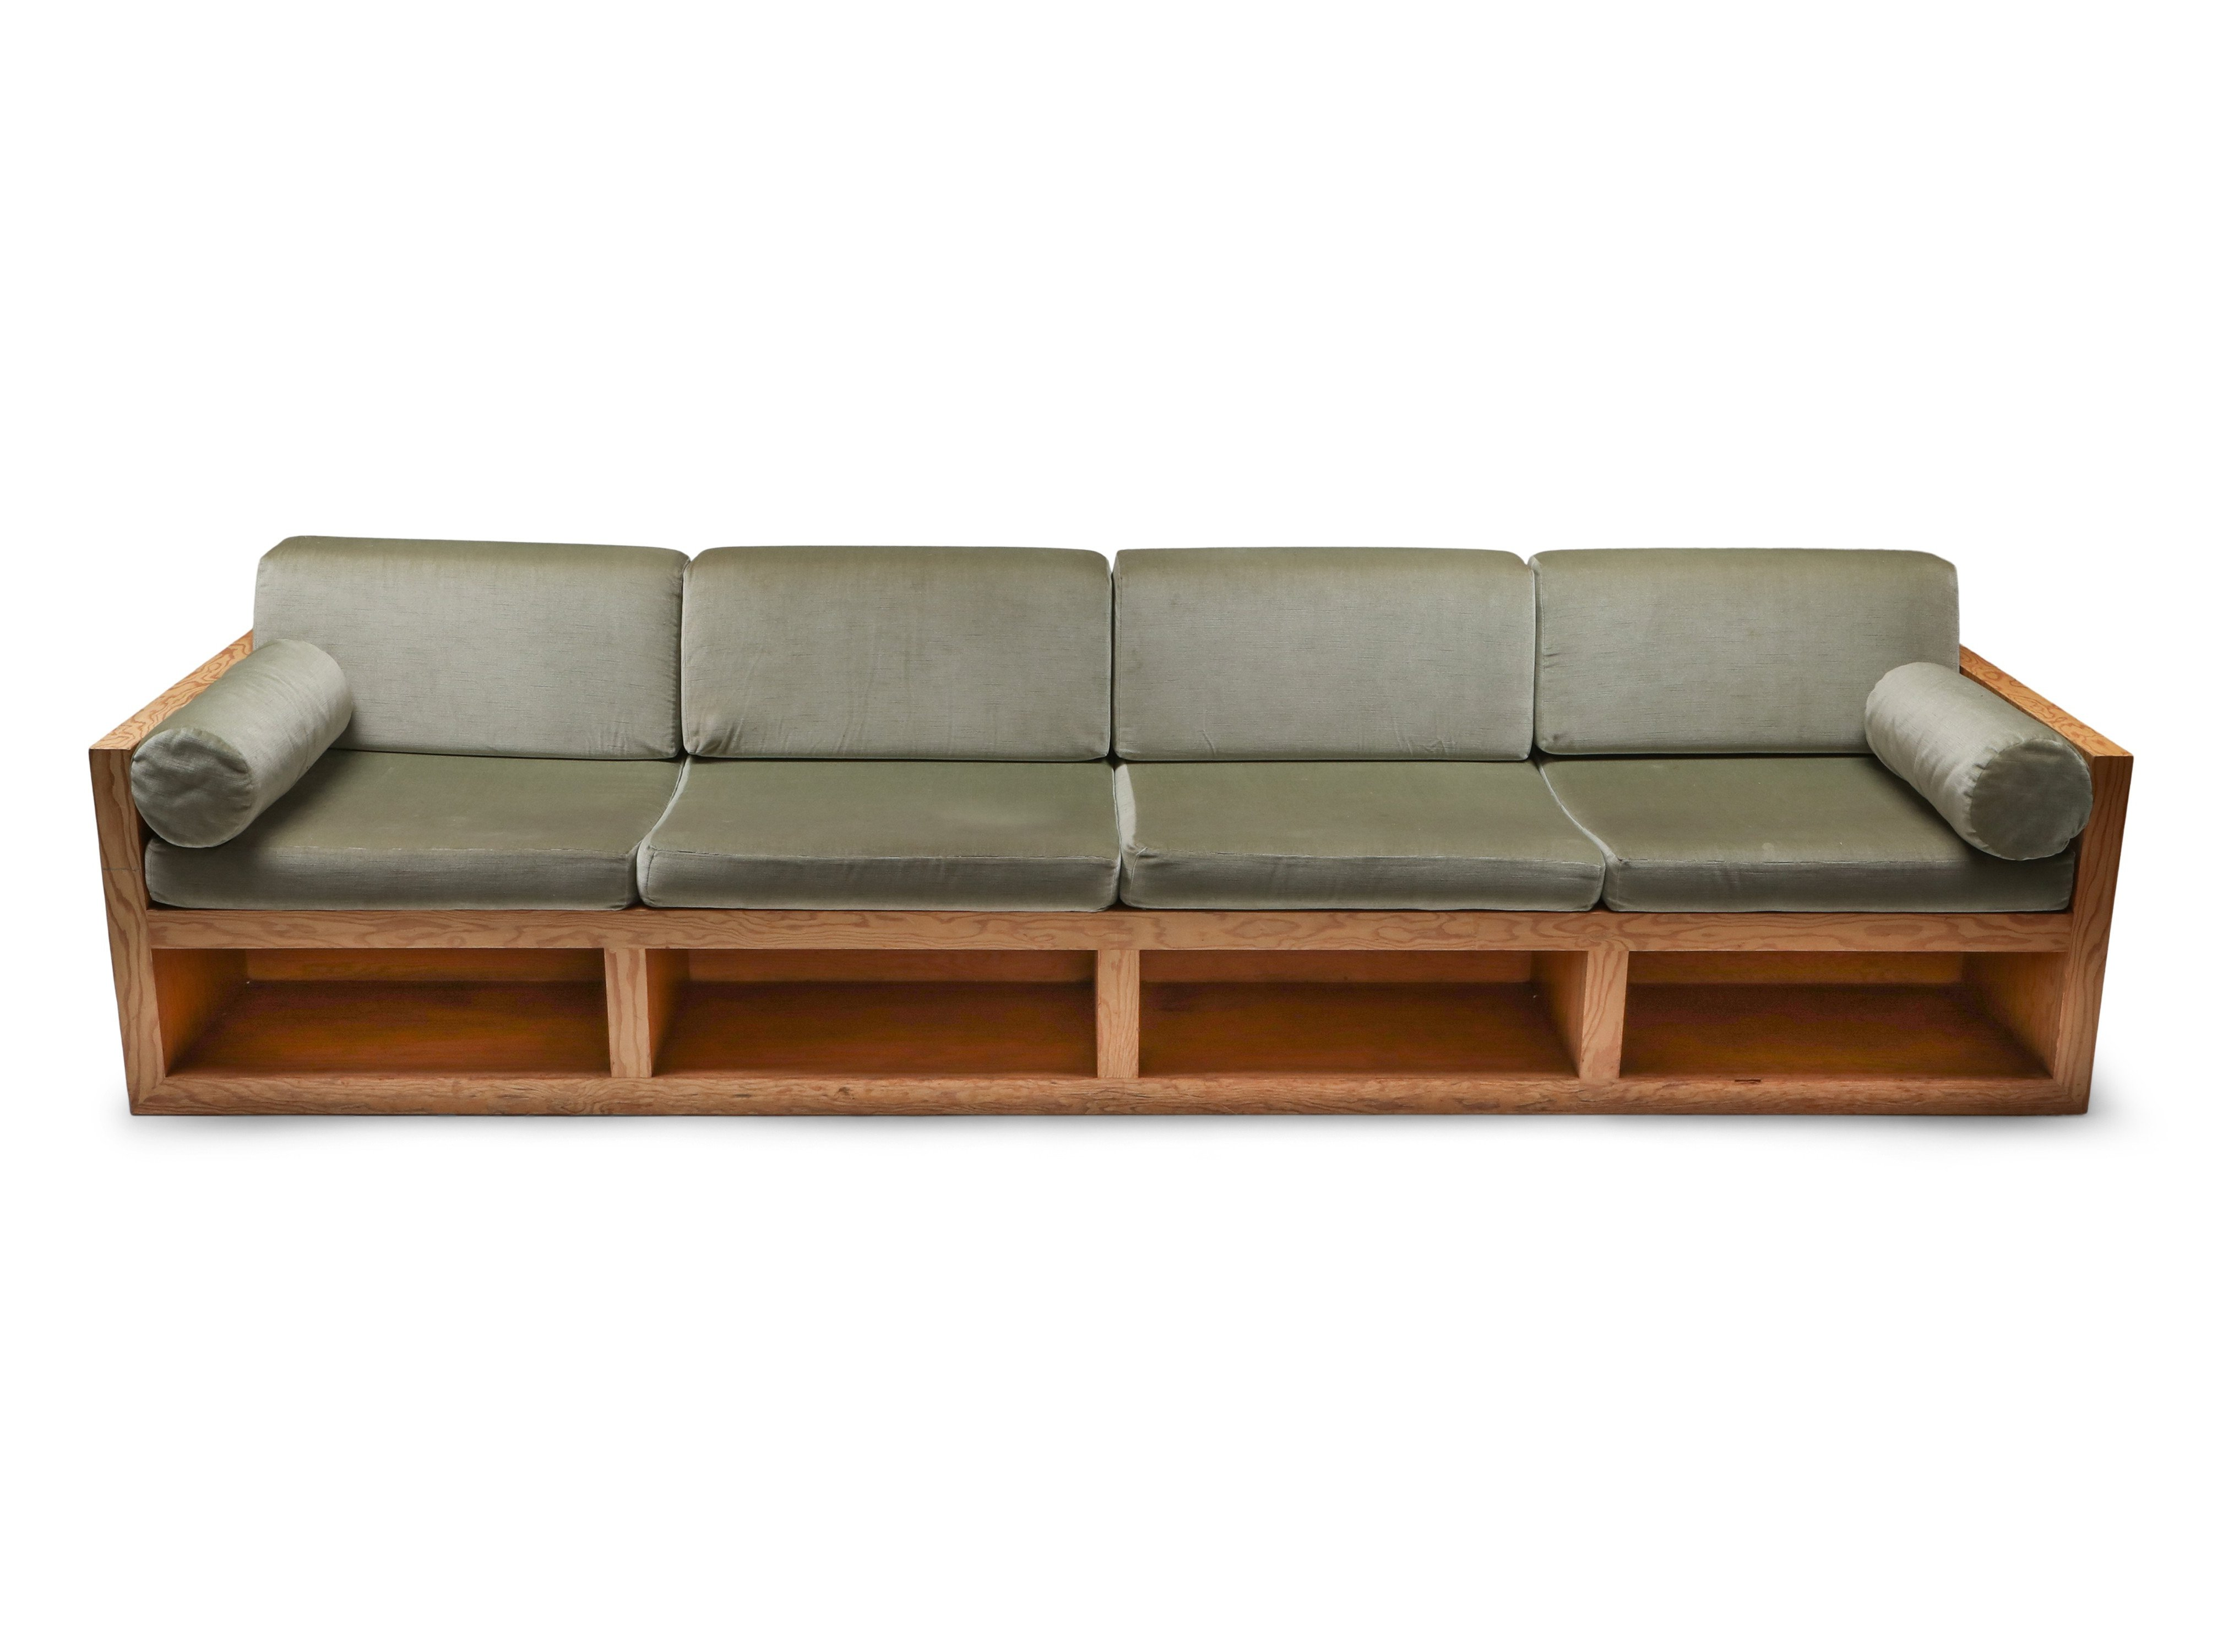 Picture of: Mid Century Modern Sofa In Pitch Pine Velvet 1960 S 125791